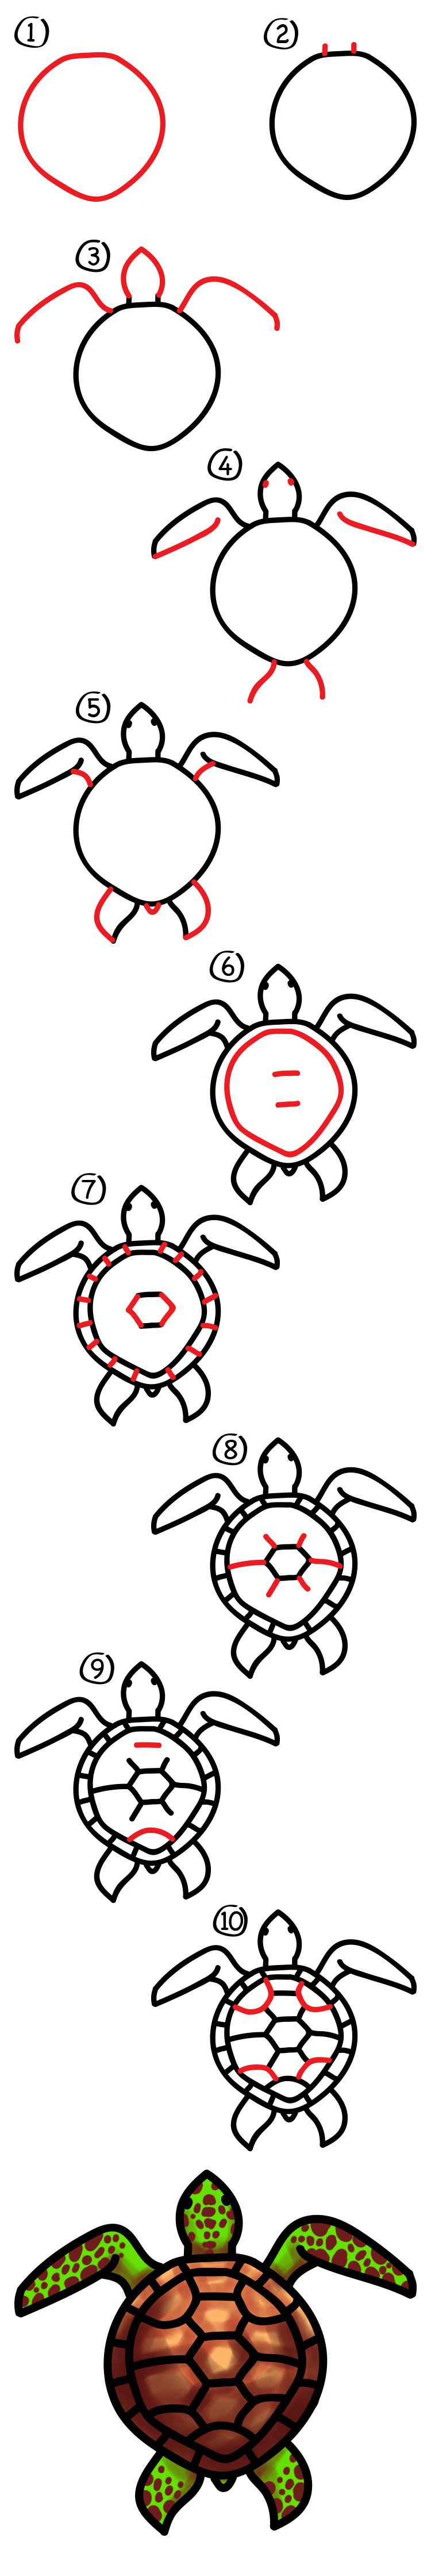 How To Draw A Realistic Sea Turtle - Art For Kids Hub -